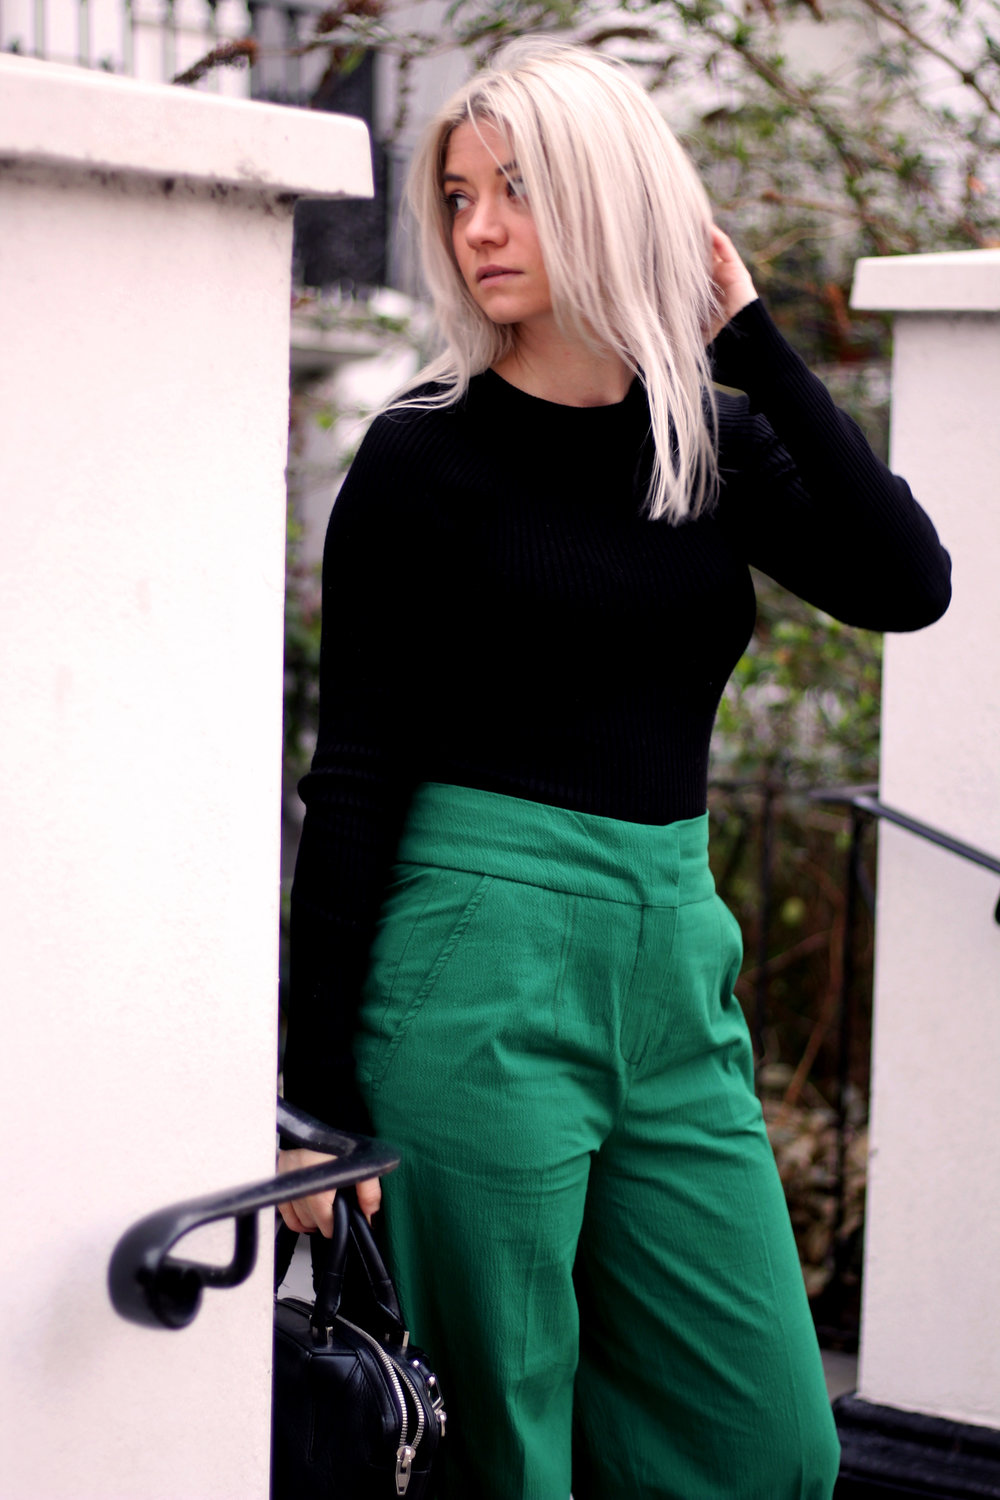 mango green trousers, random facts, northern magpie, joey taylor 6